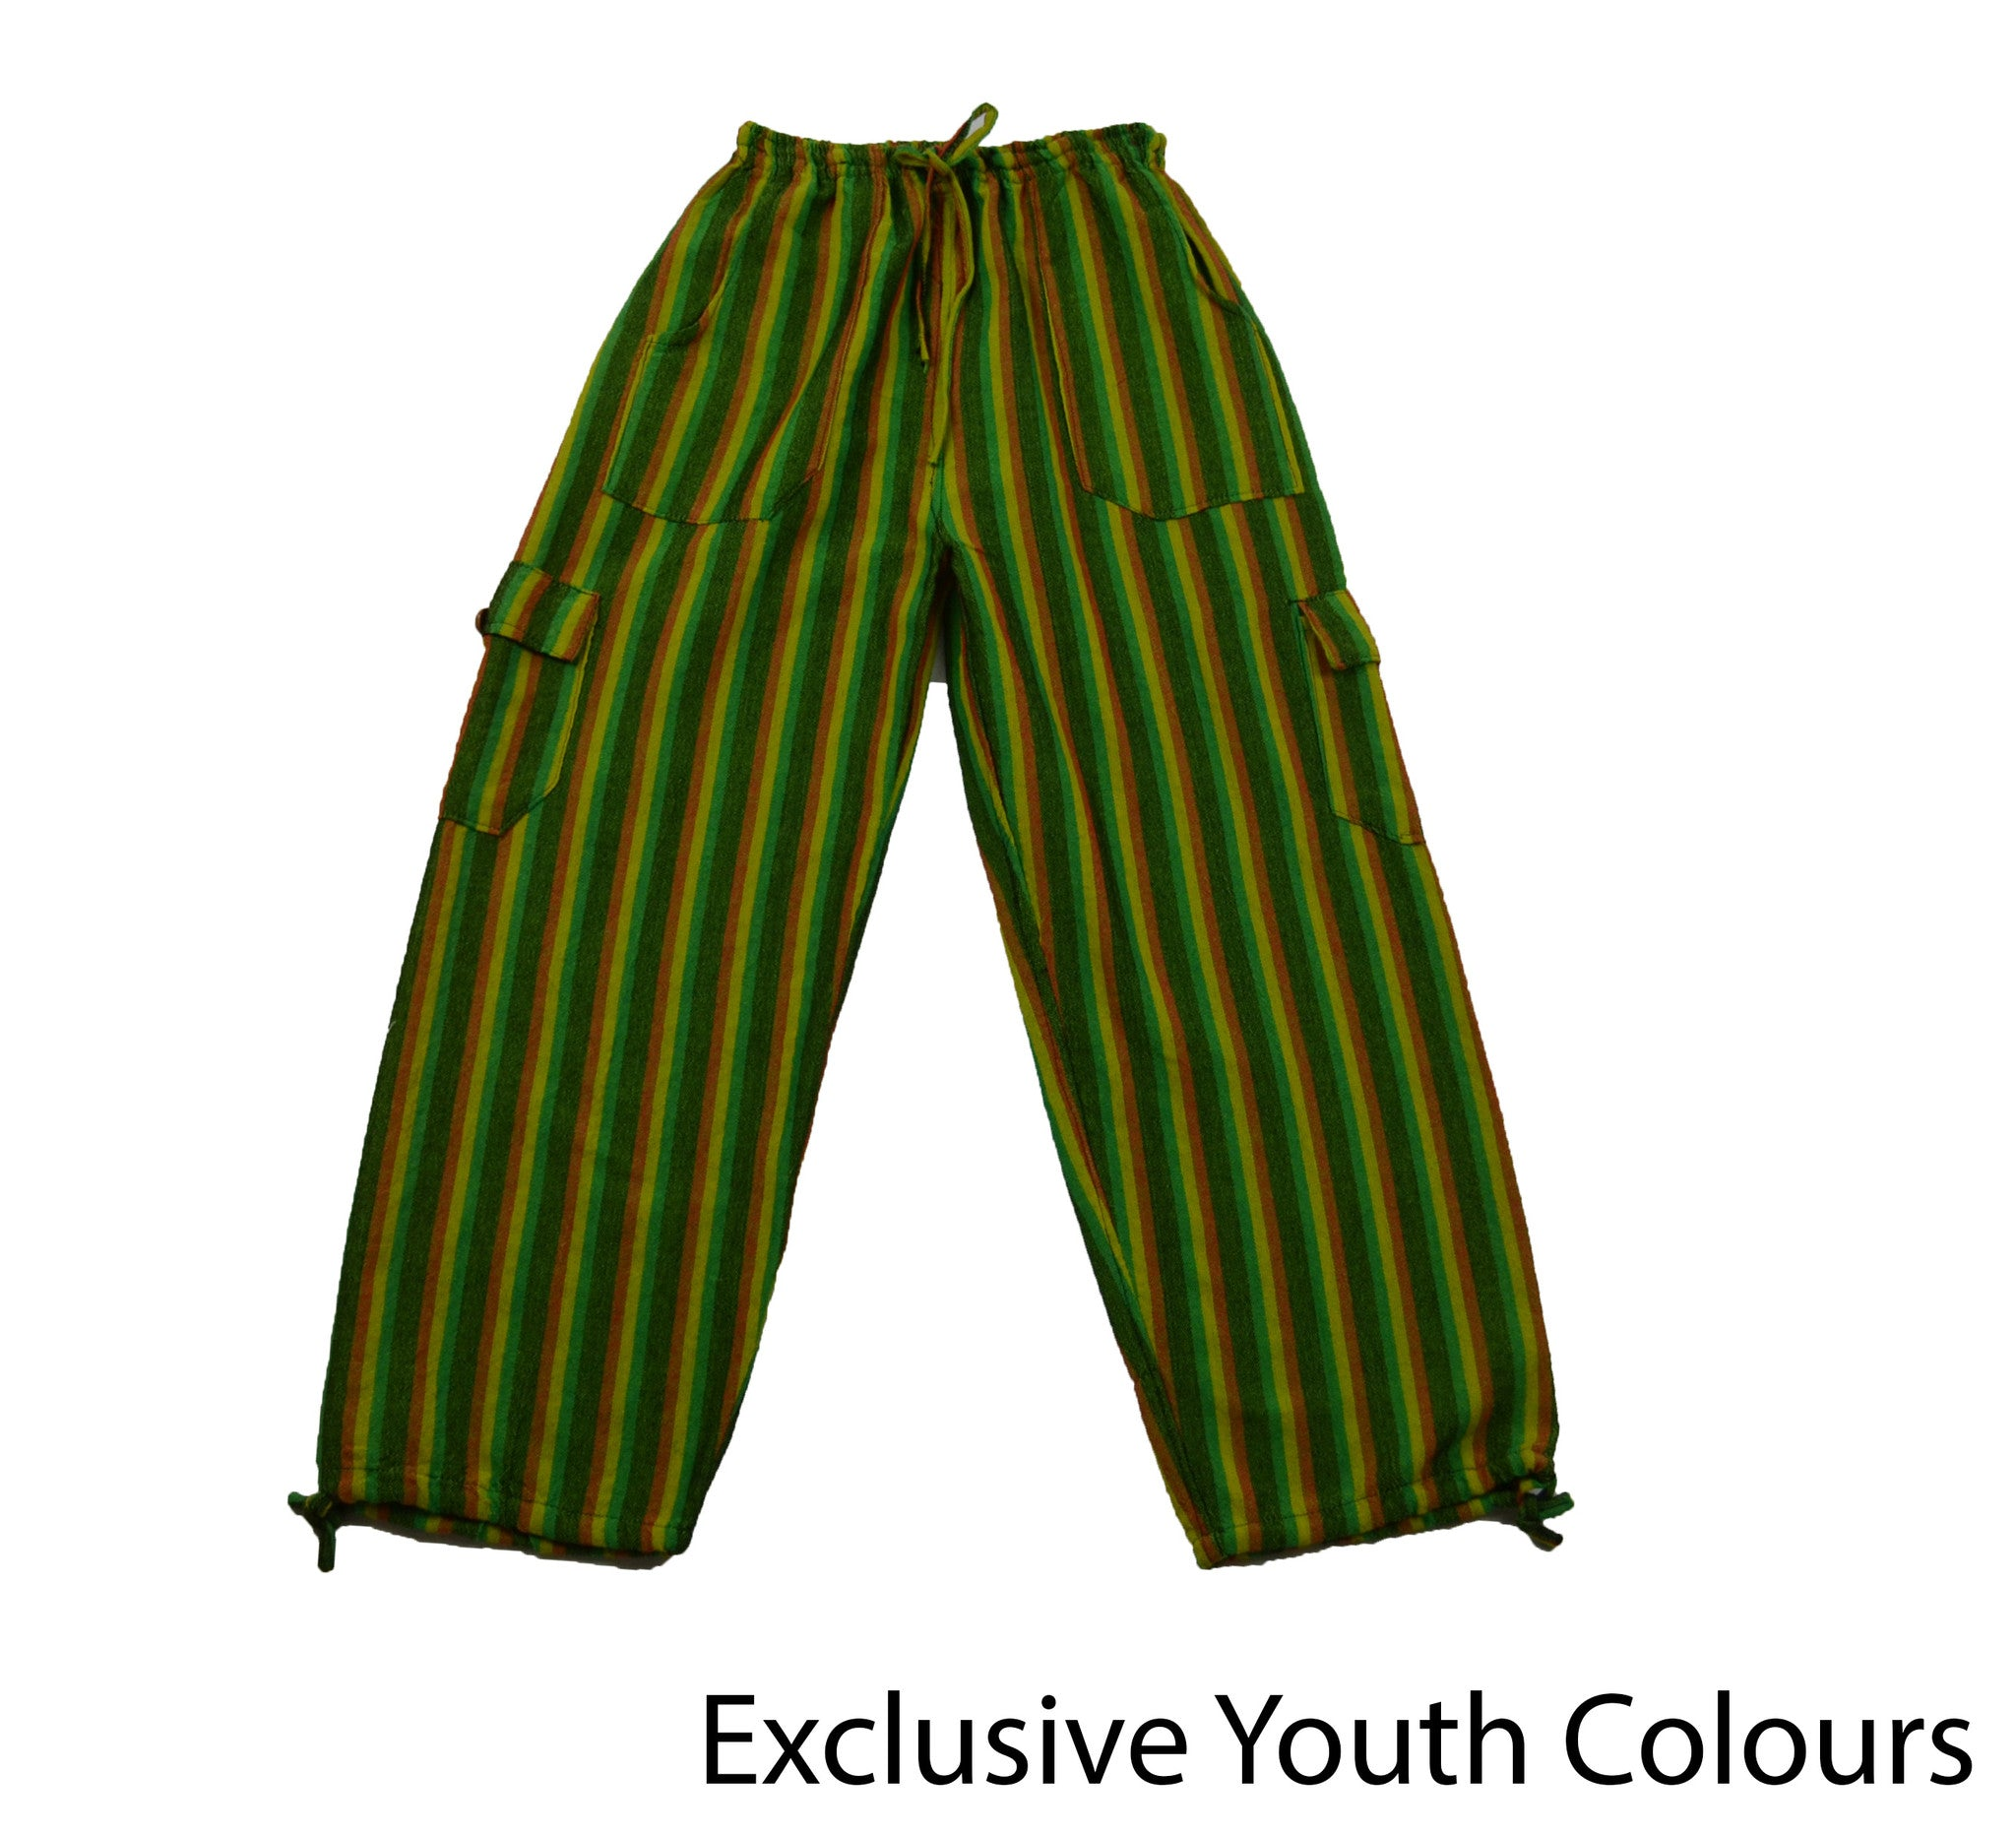 Green Youth Pants - Happy Pants